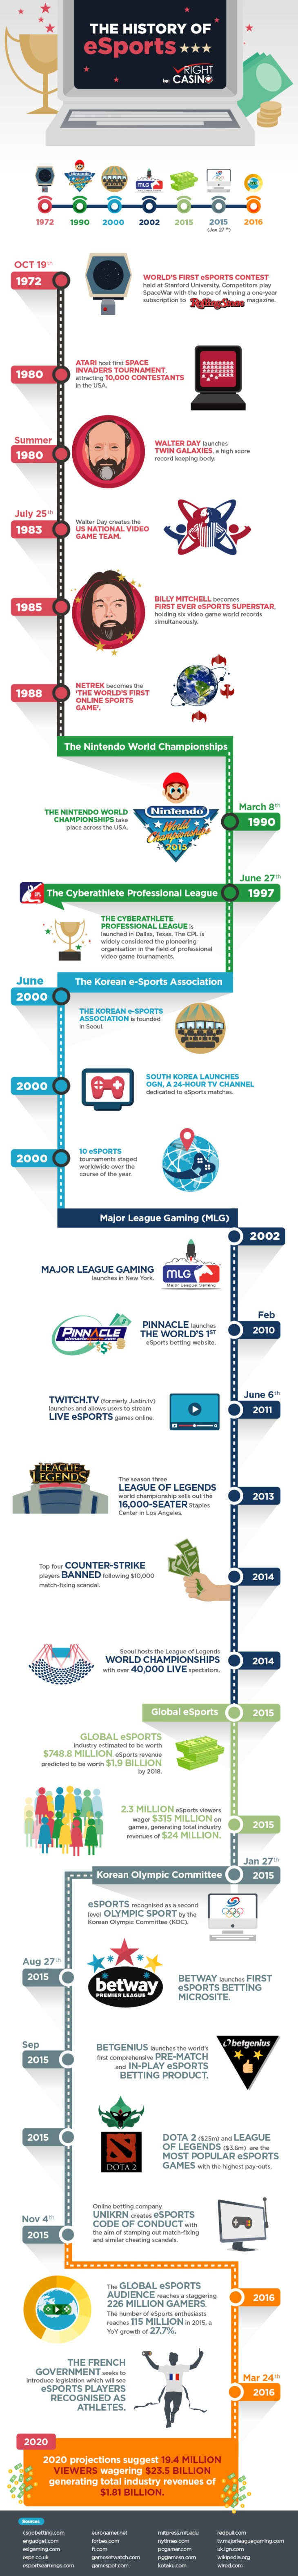 The-History-of-eSports-Betting_infographic-d06.d18.d29